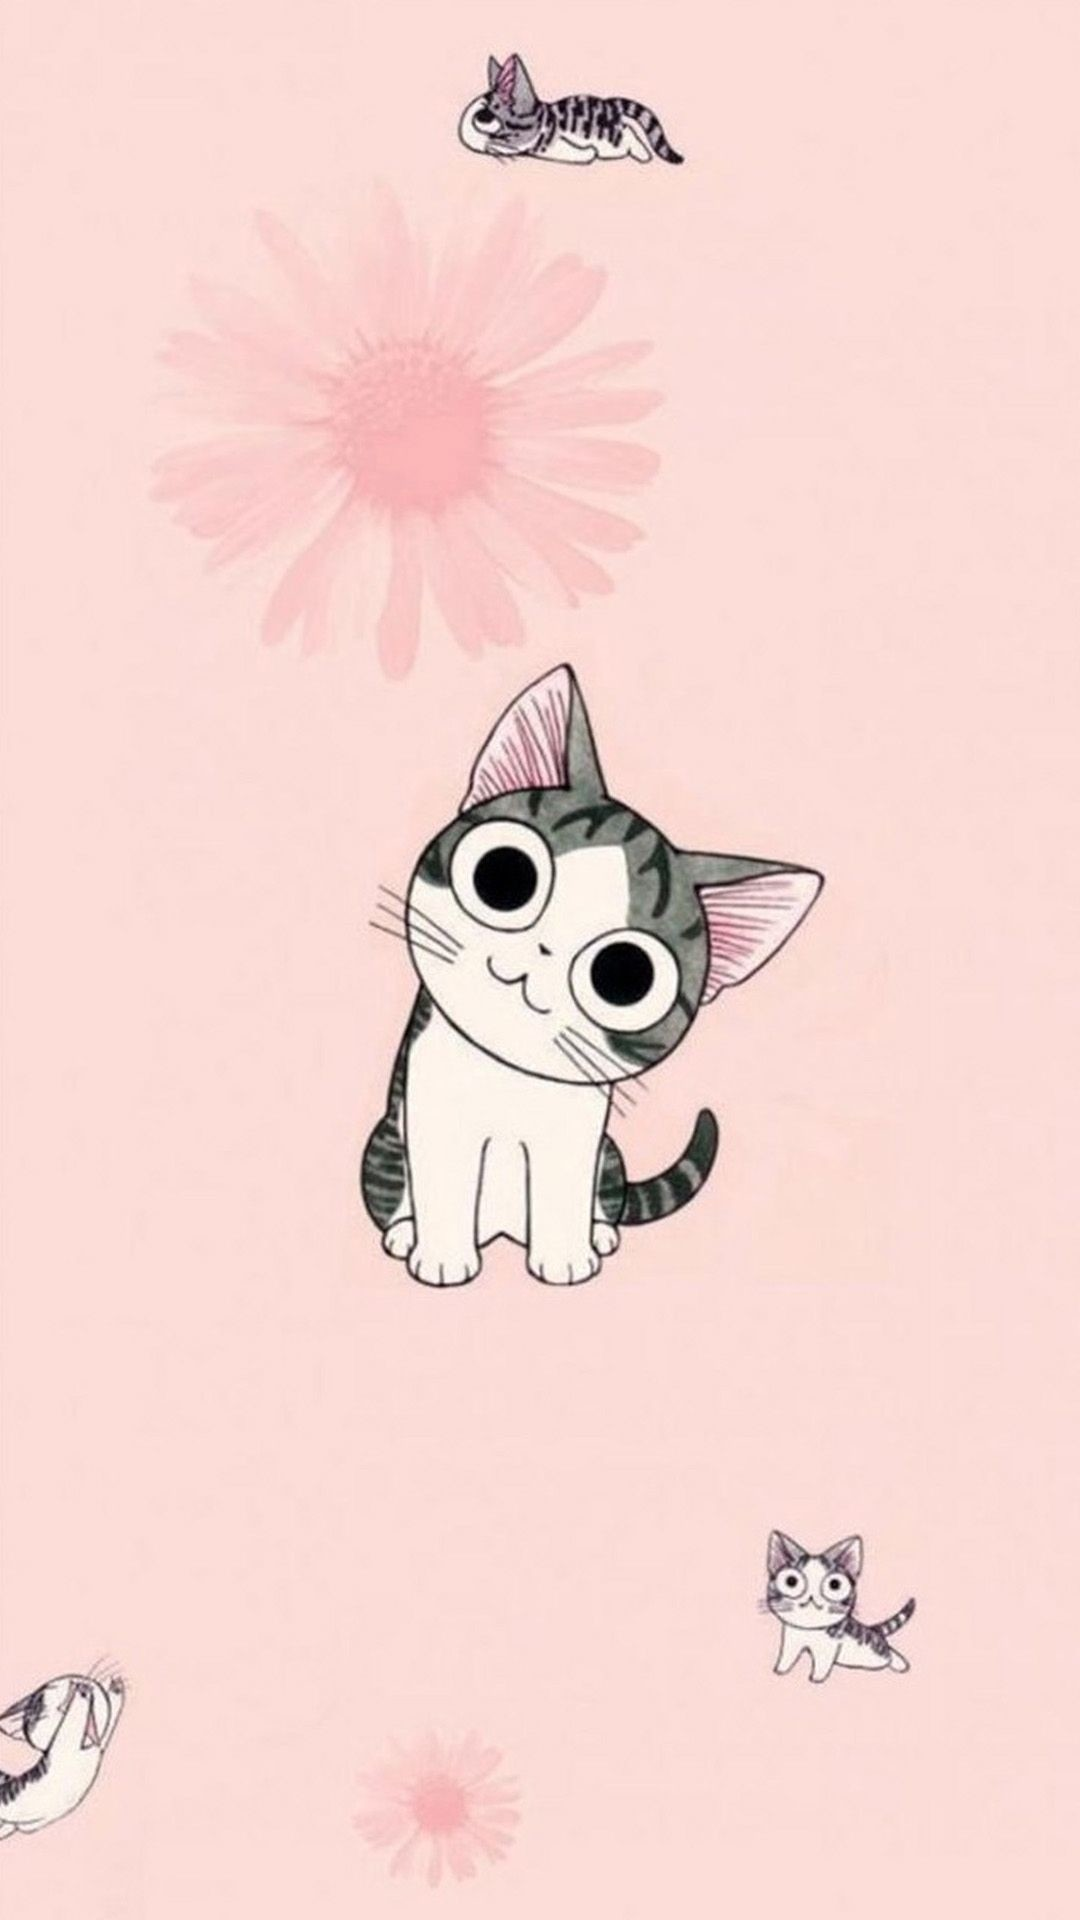 1080x1920 Cartoon Cat Wallpaper Iphone - Download Best Cartoon Cat Wallpaper  Iphonefor iPhone Wallpaper inHD. You can find other wallpaper for iPhone  onCartoon ...